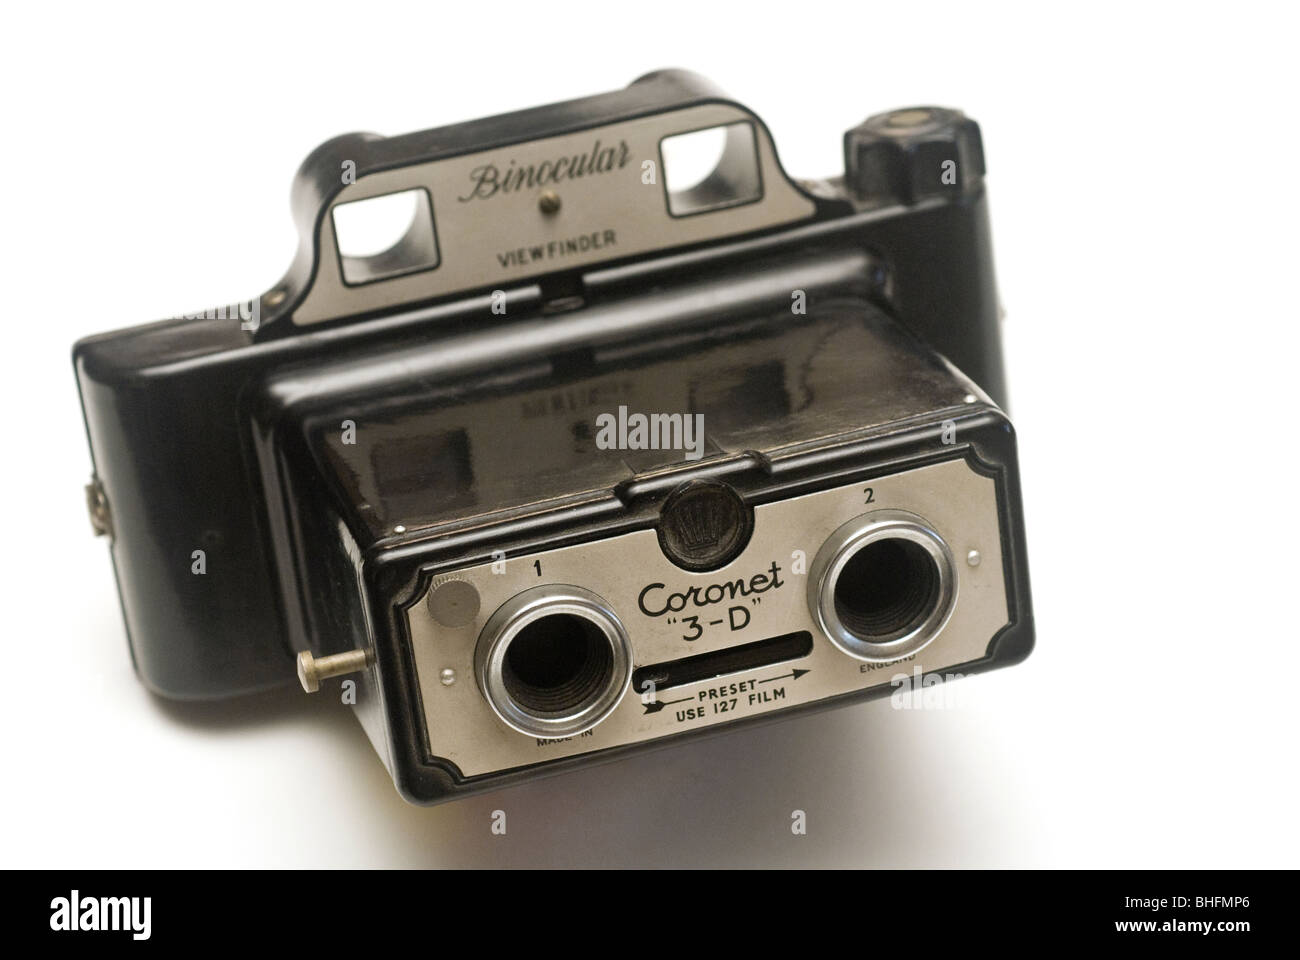 Coronet 3-D made in England camera dating from the early 1950's - Stock Image